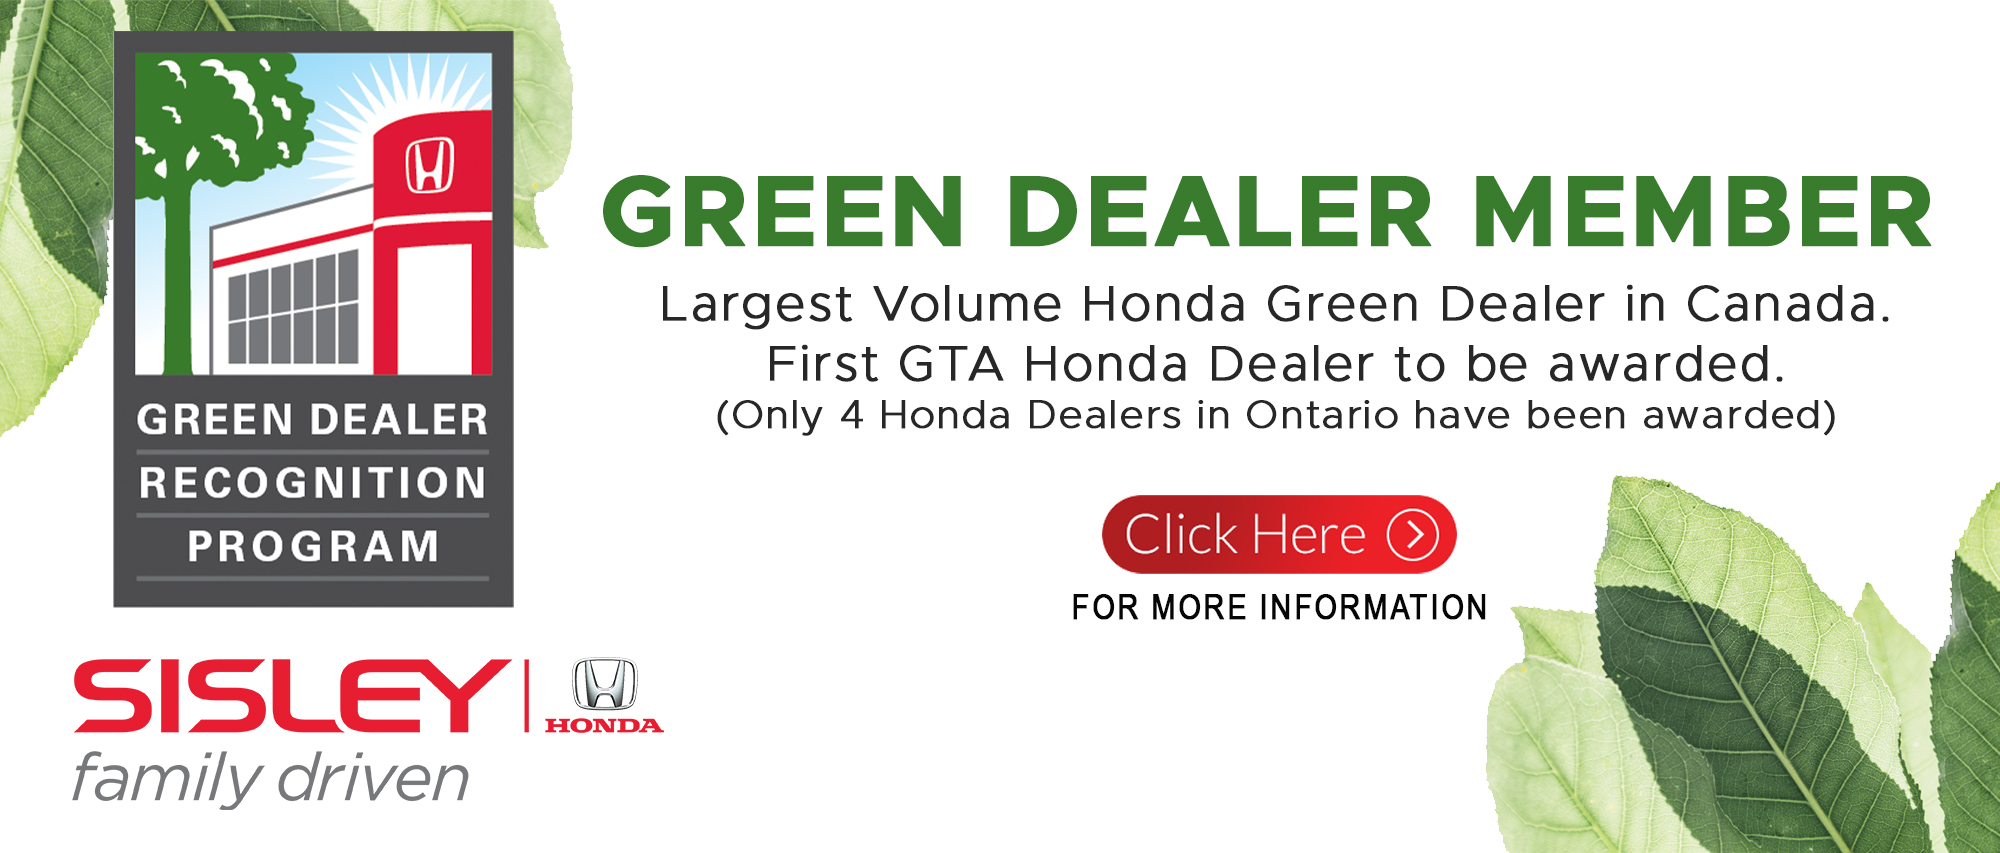 Green Dealer Recognition Award